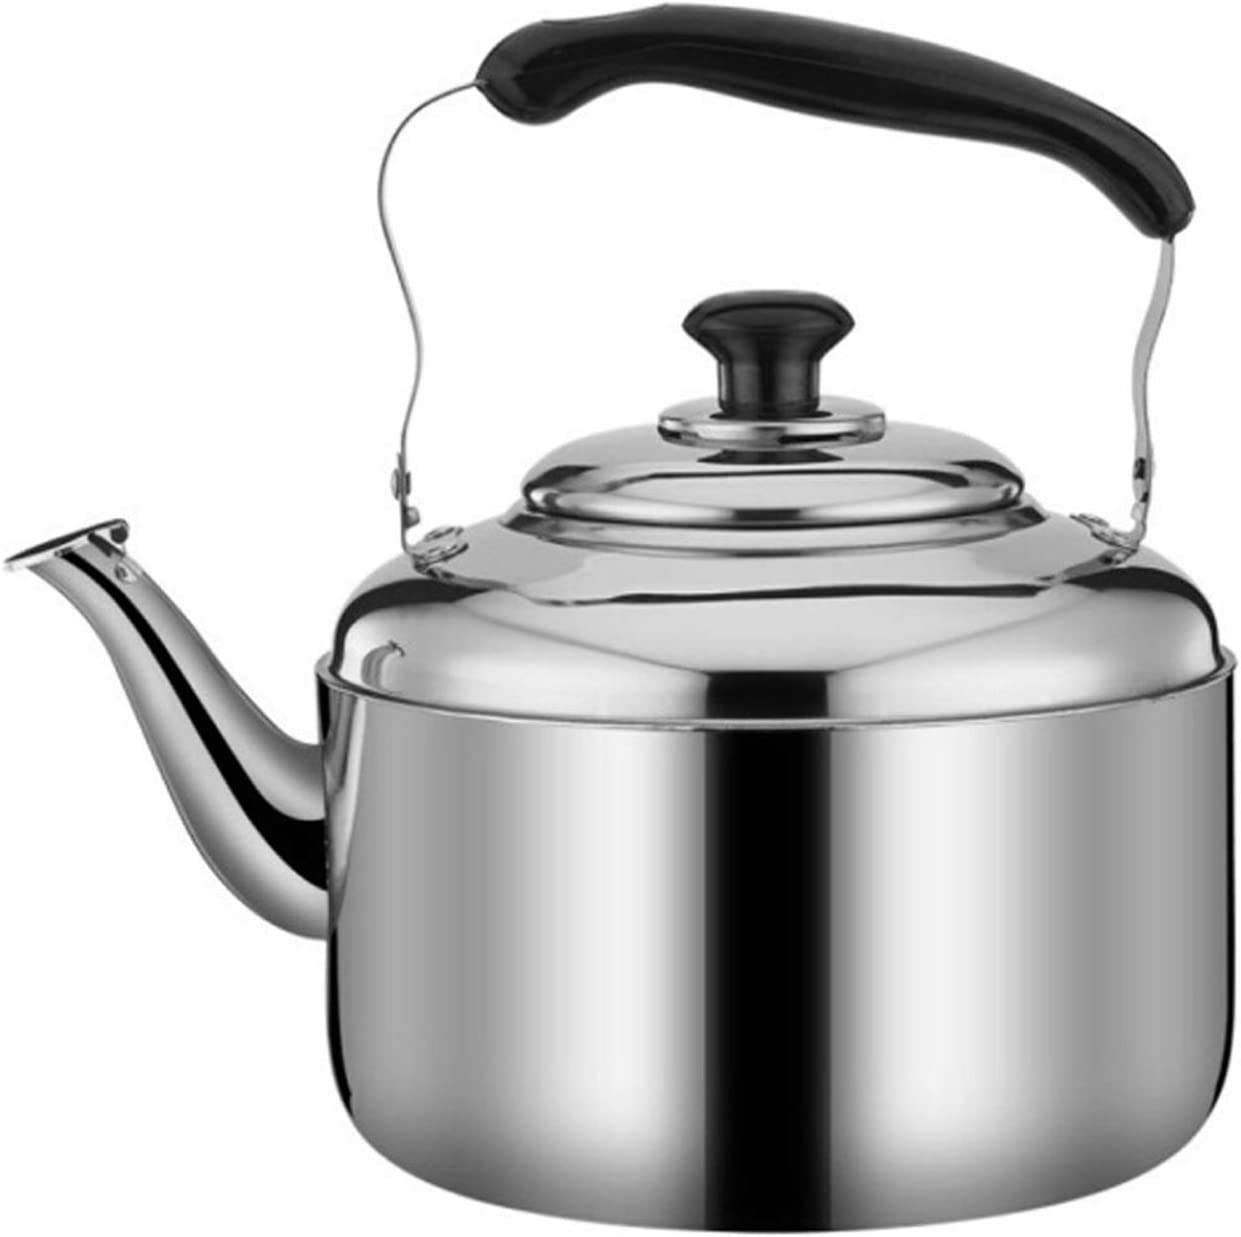 Whistling 2021 new Kettles Tea Pots Al sold out. for Stainle Whistle Classic Stove Top